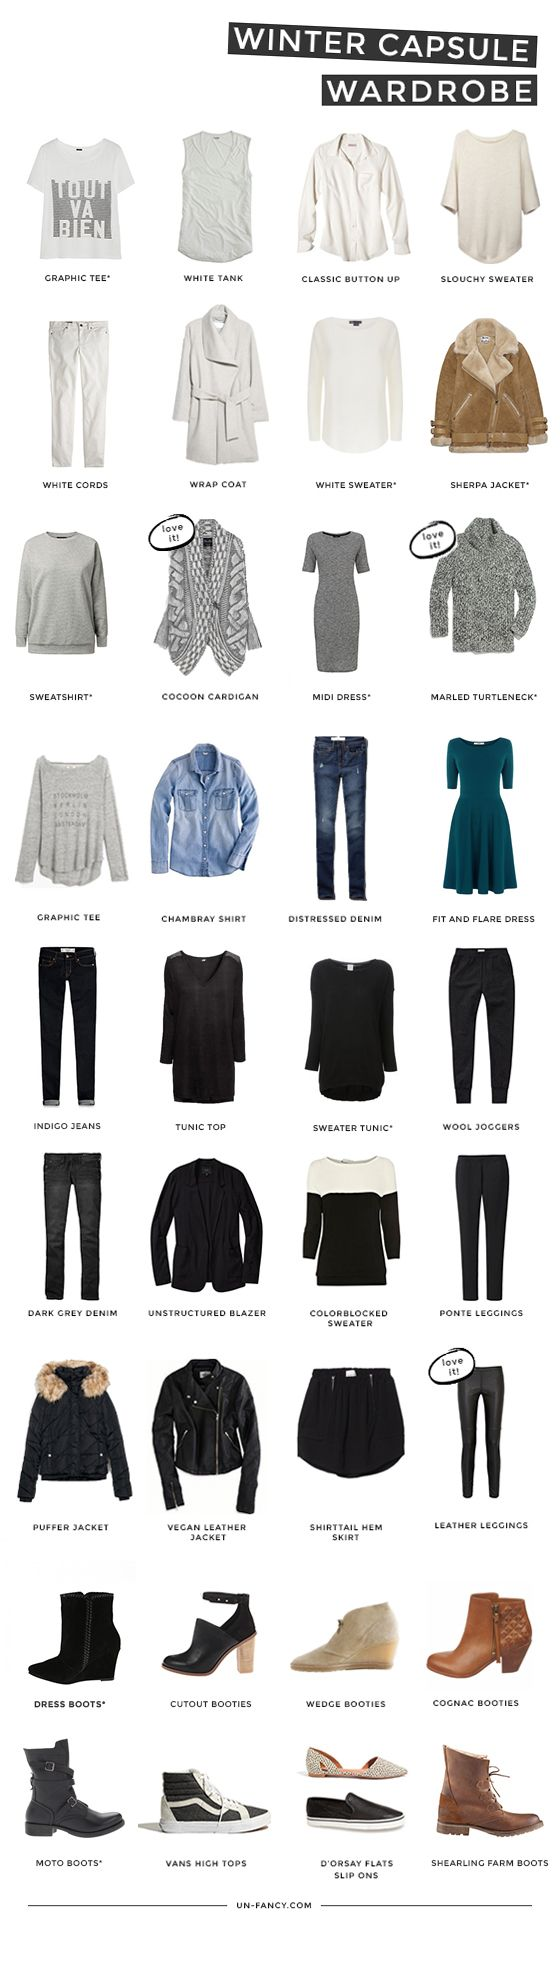 Unfancy Winter Capsule Wardrobe 2015 - my winter capsule wardrobe